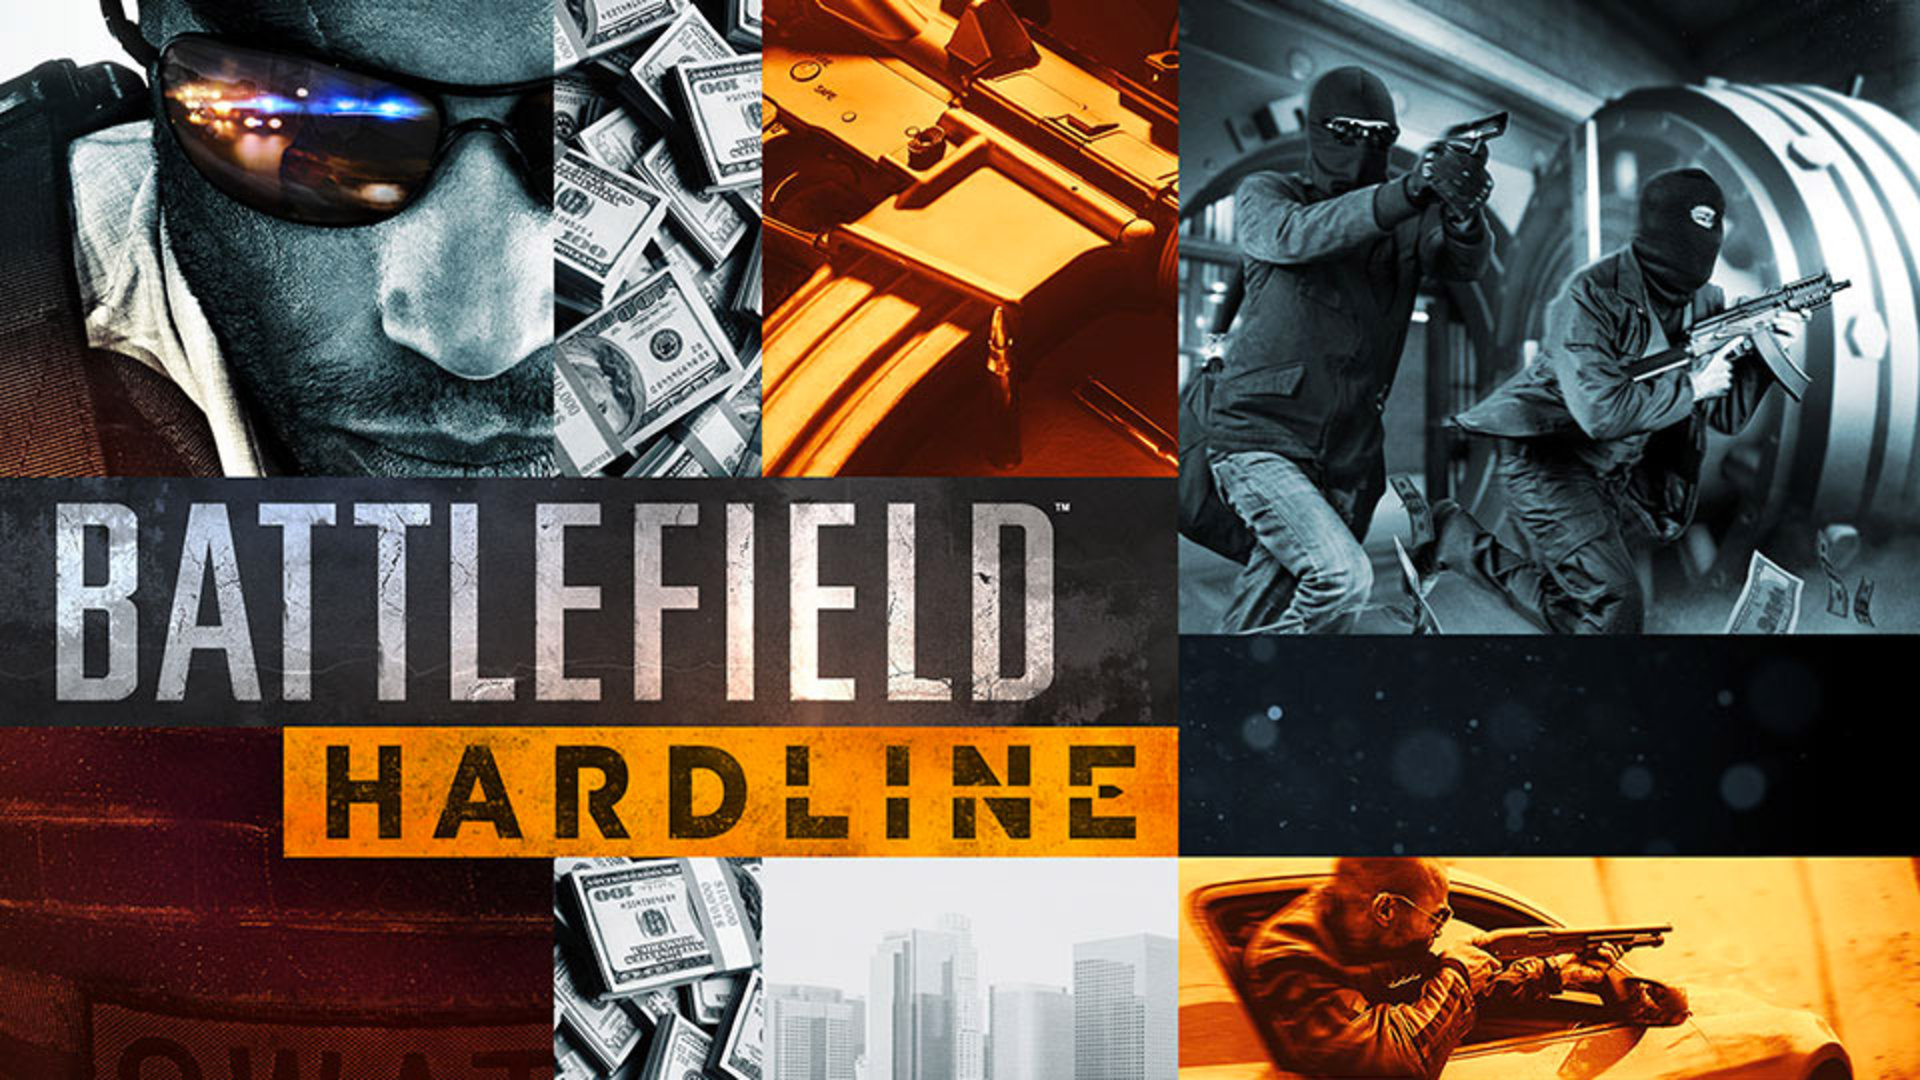 Battlefield :Hardline gets second Beta to test online stability of the game